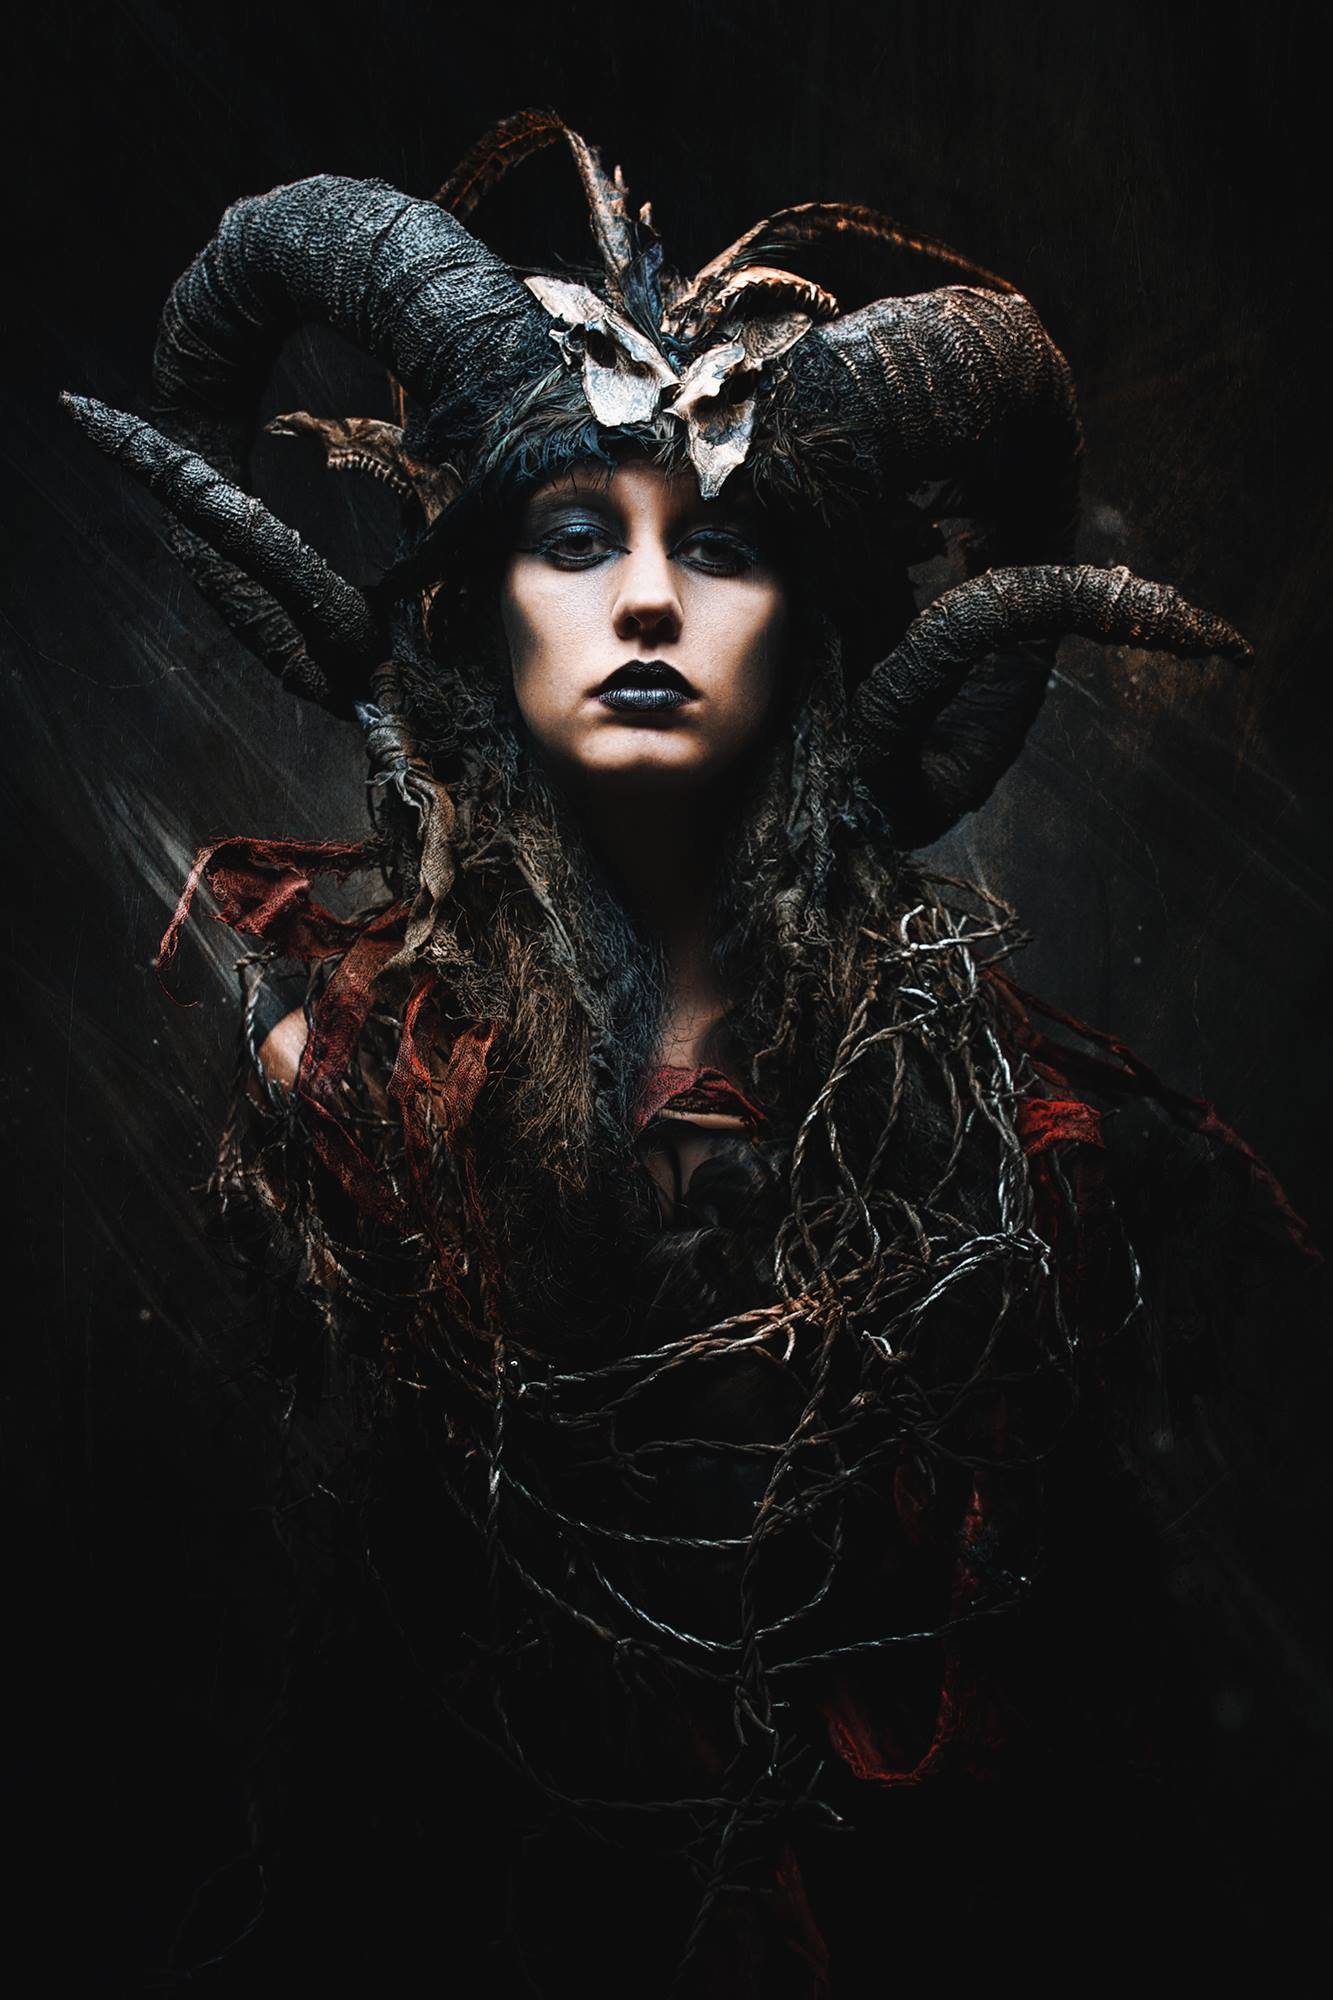 Stefan Gesell Photography manipulation – FROM BEYOND